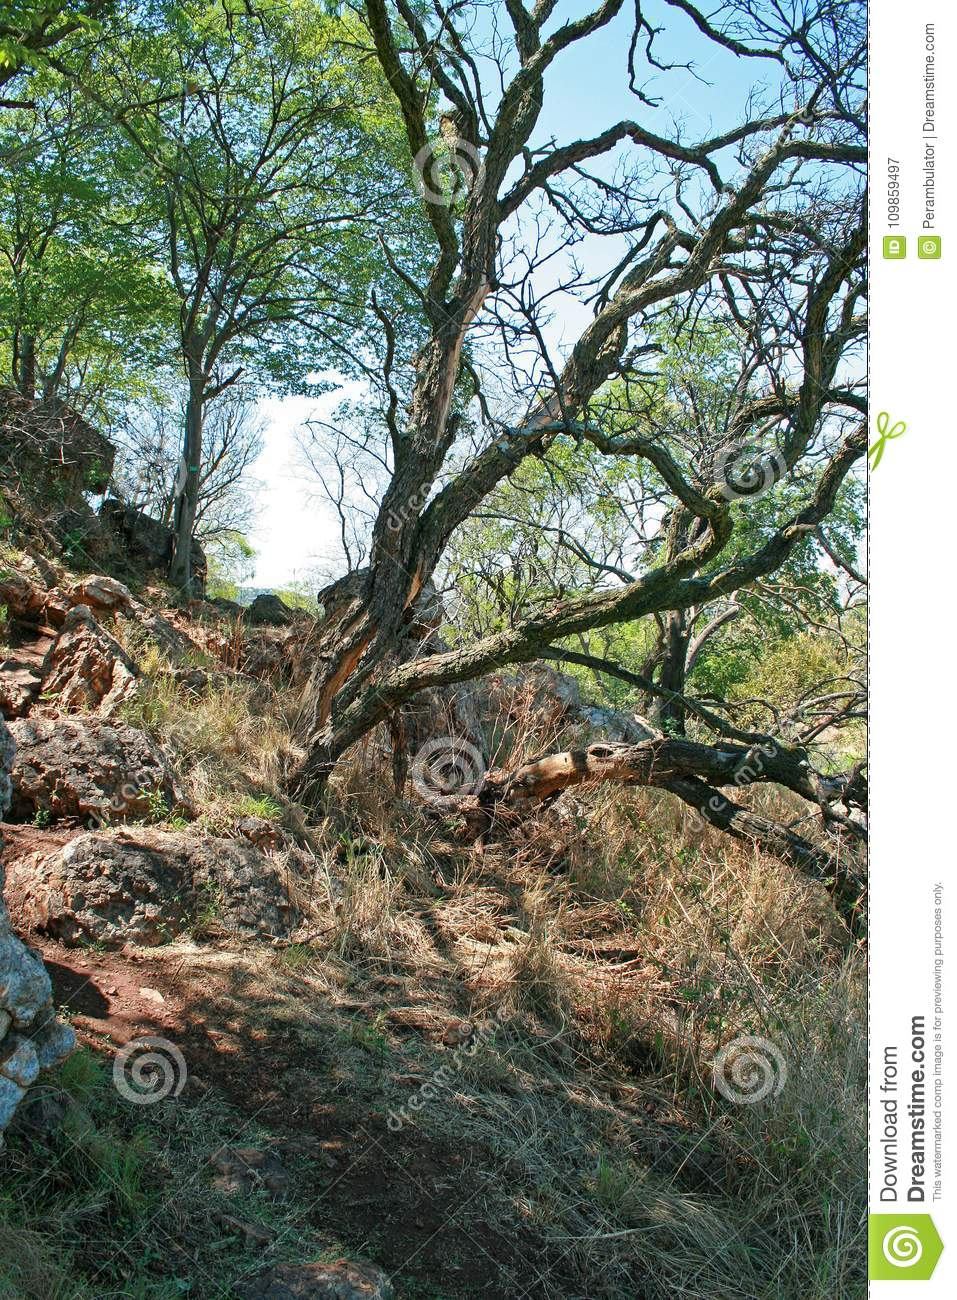 SLANTED TREE GROWING ON A SLOPE